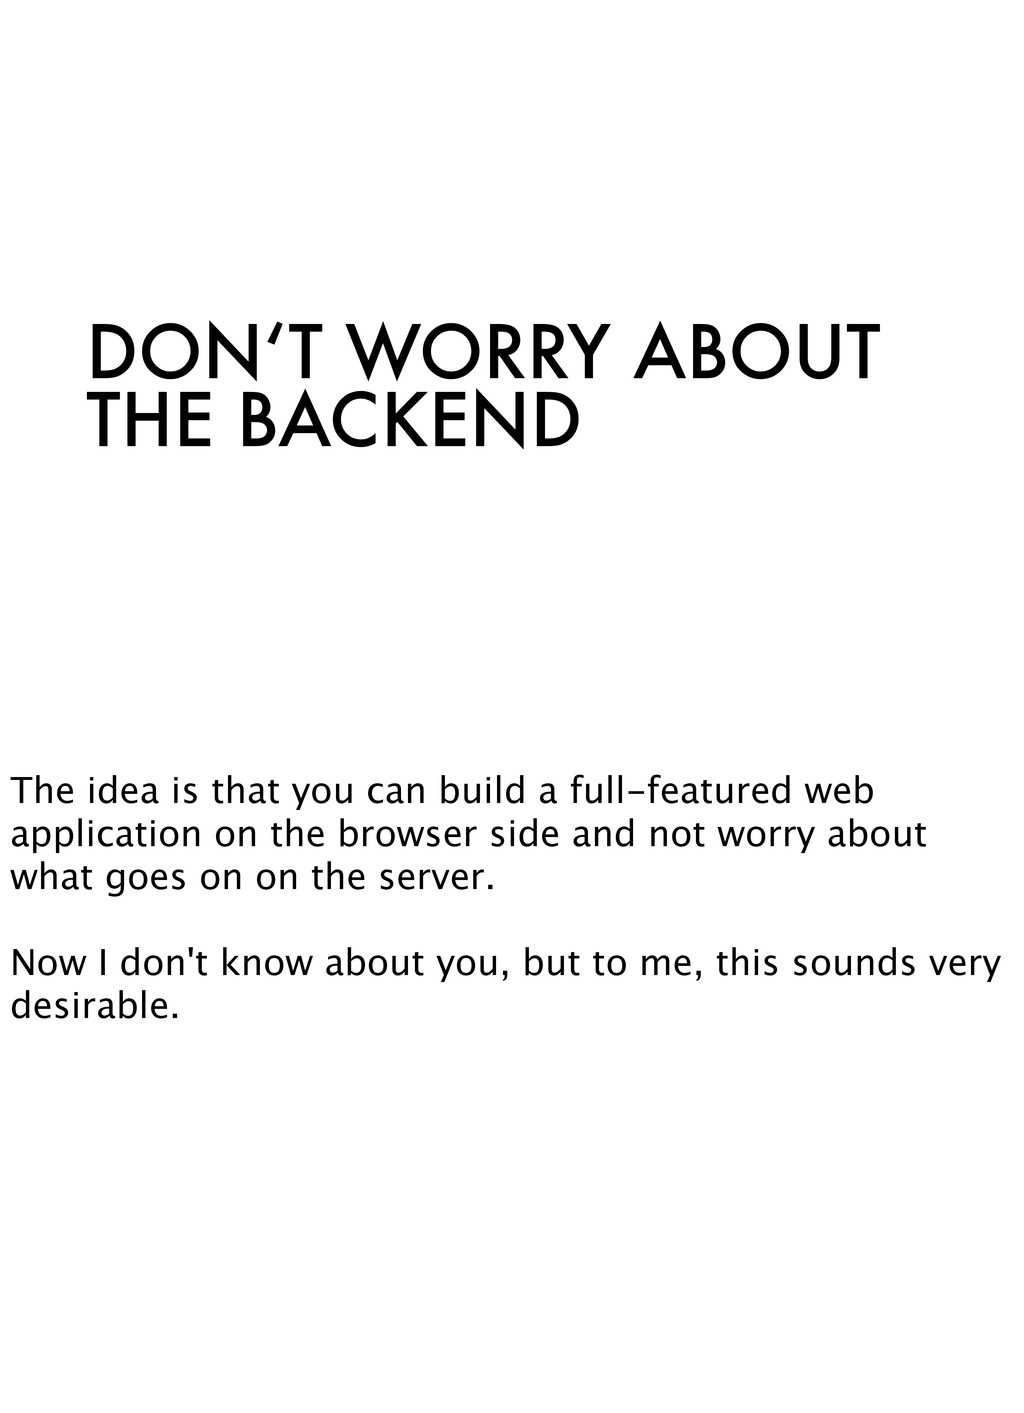 DON'T WORRY ABOUT THE BACKEND The idea is that ...